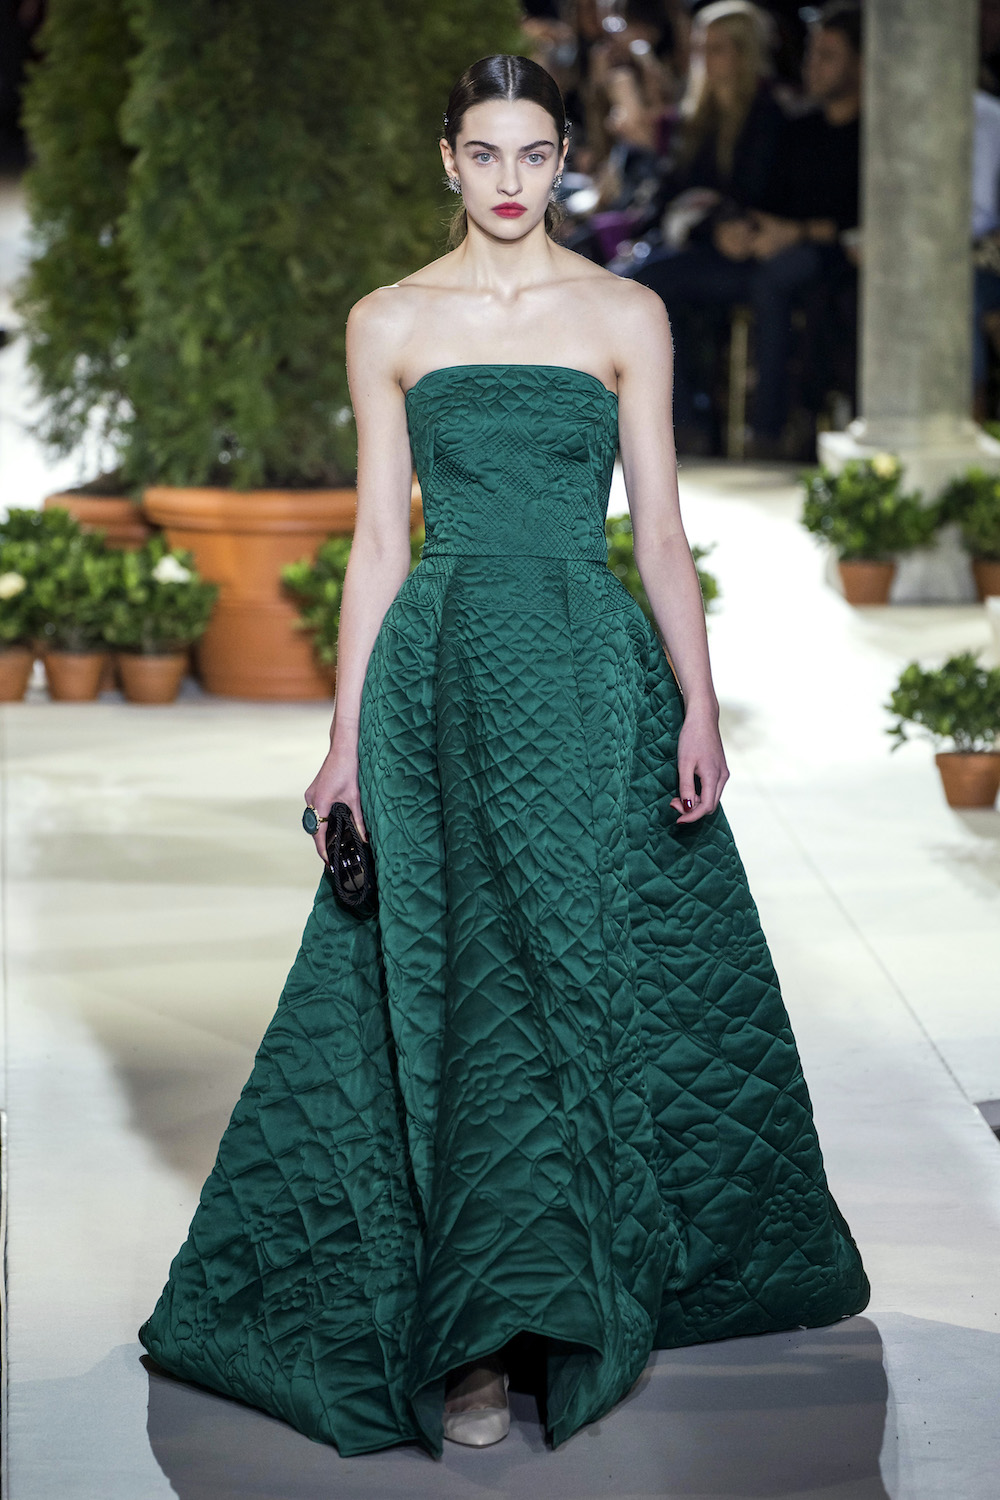 Oscar de la Renta Fall/Winter 2019